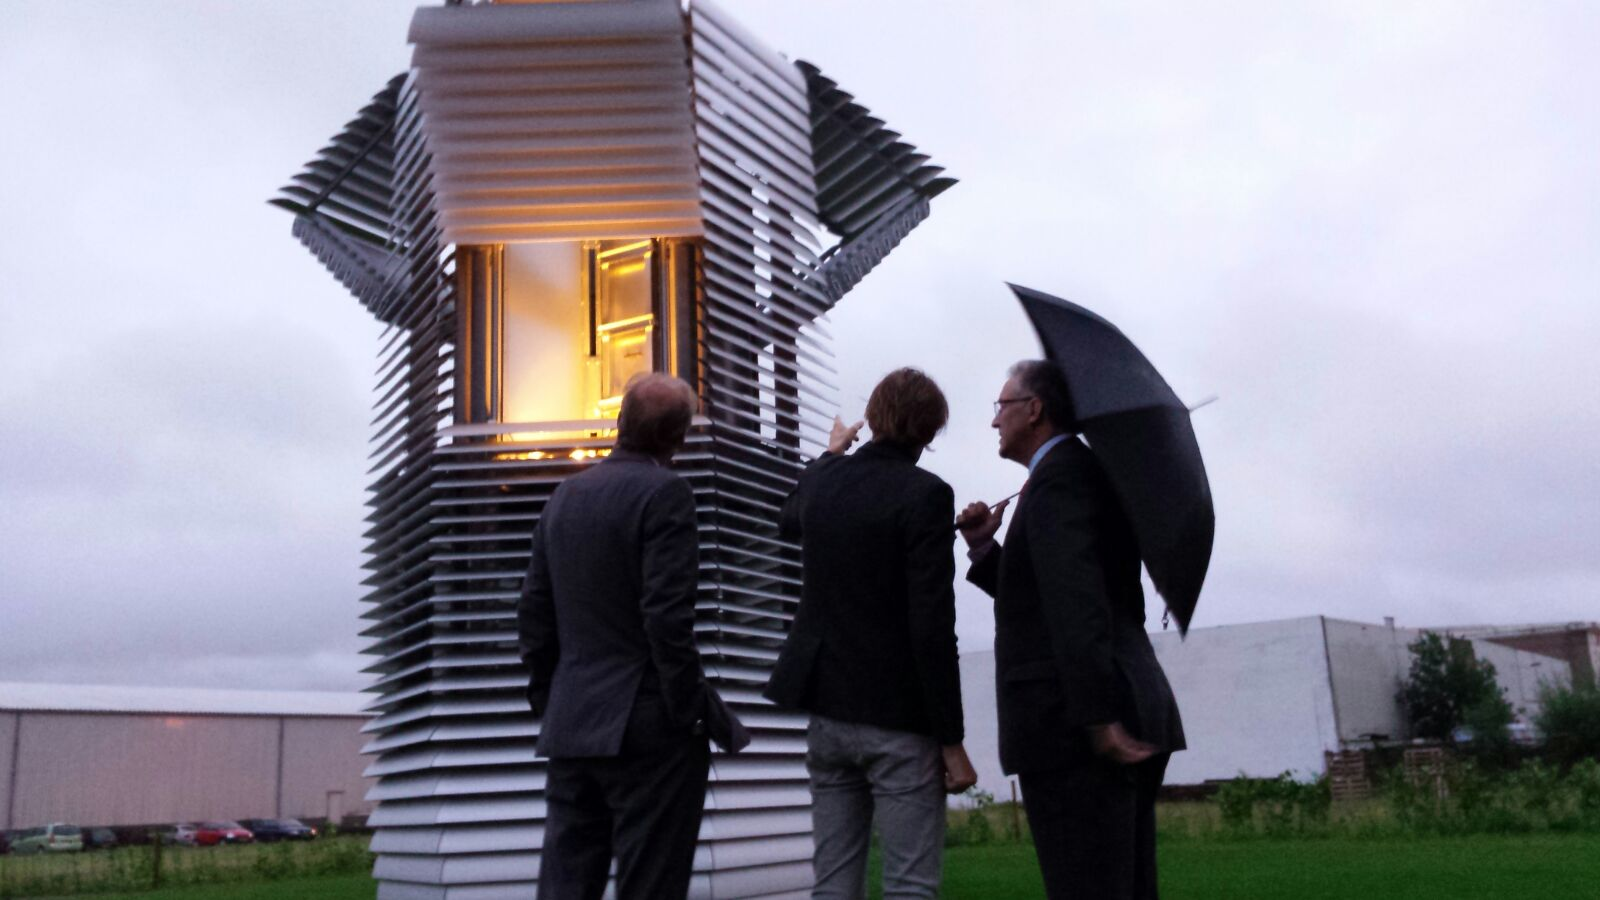 aboutaleb_and_daan_roosegaarde_opening_smog_free_tower_rotterdam